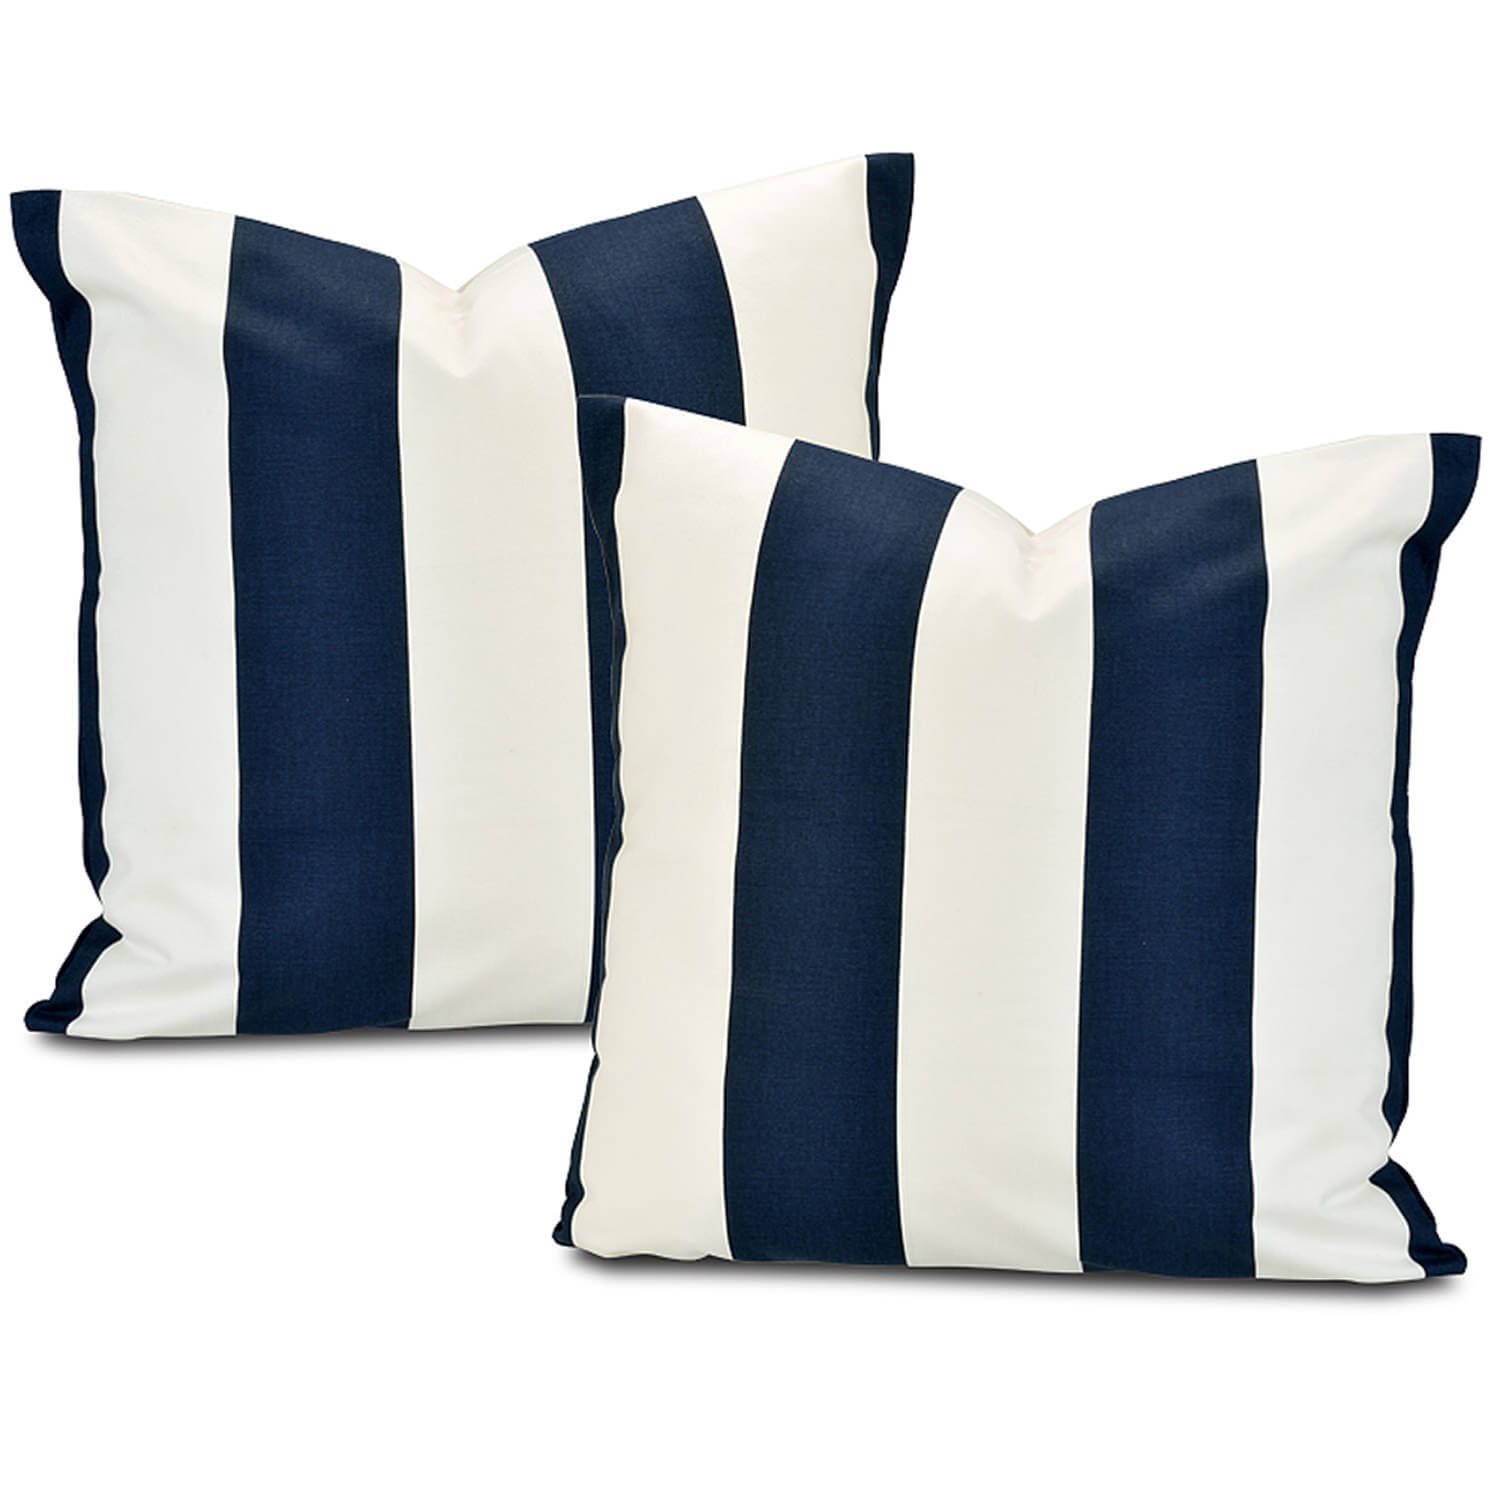 Cabana Navy Printed Cotton Cushion Cover (Pair)